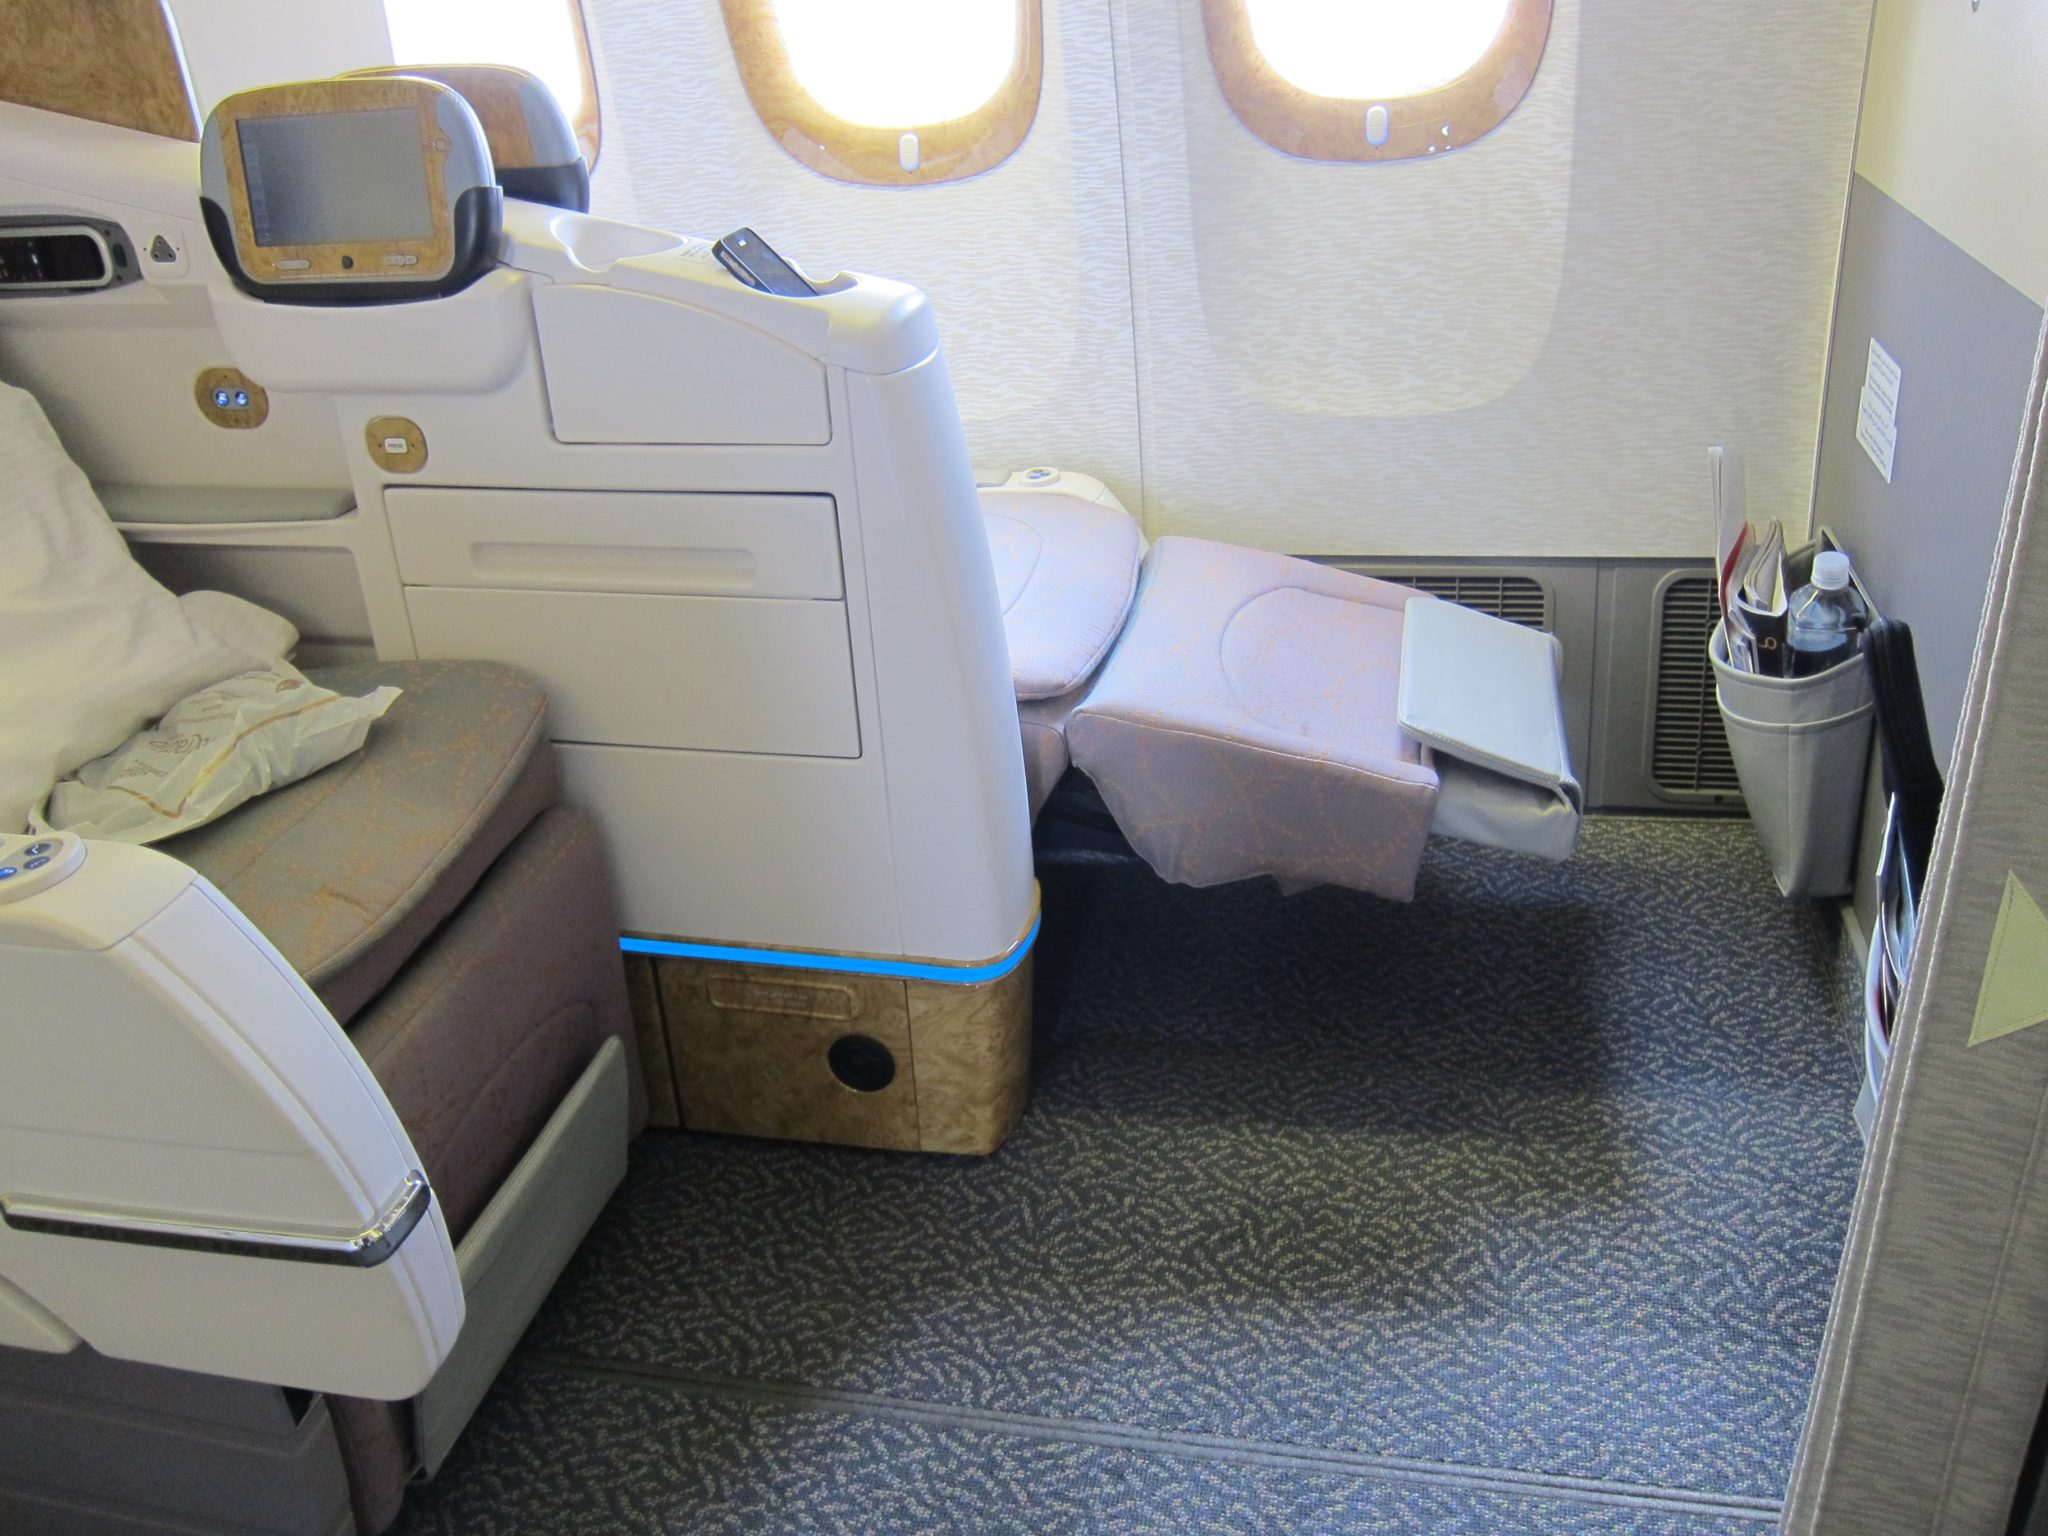 Emirates Should Come Clean About Its Non A380 Business